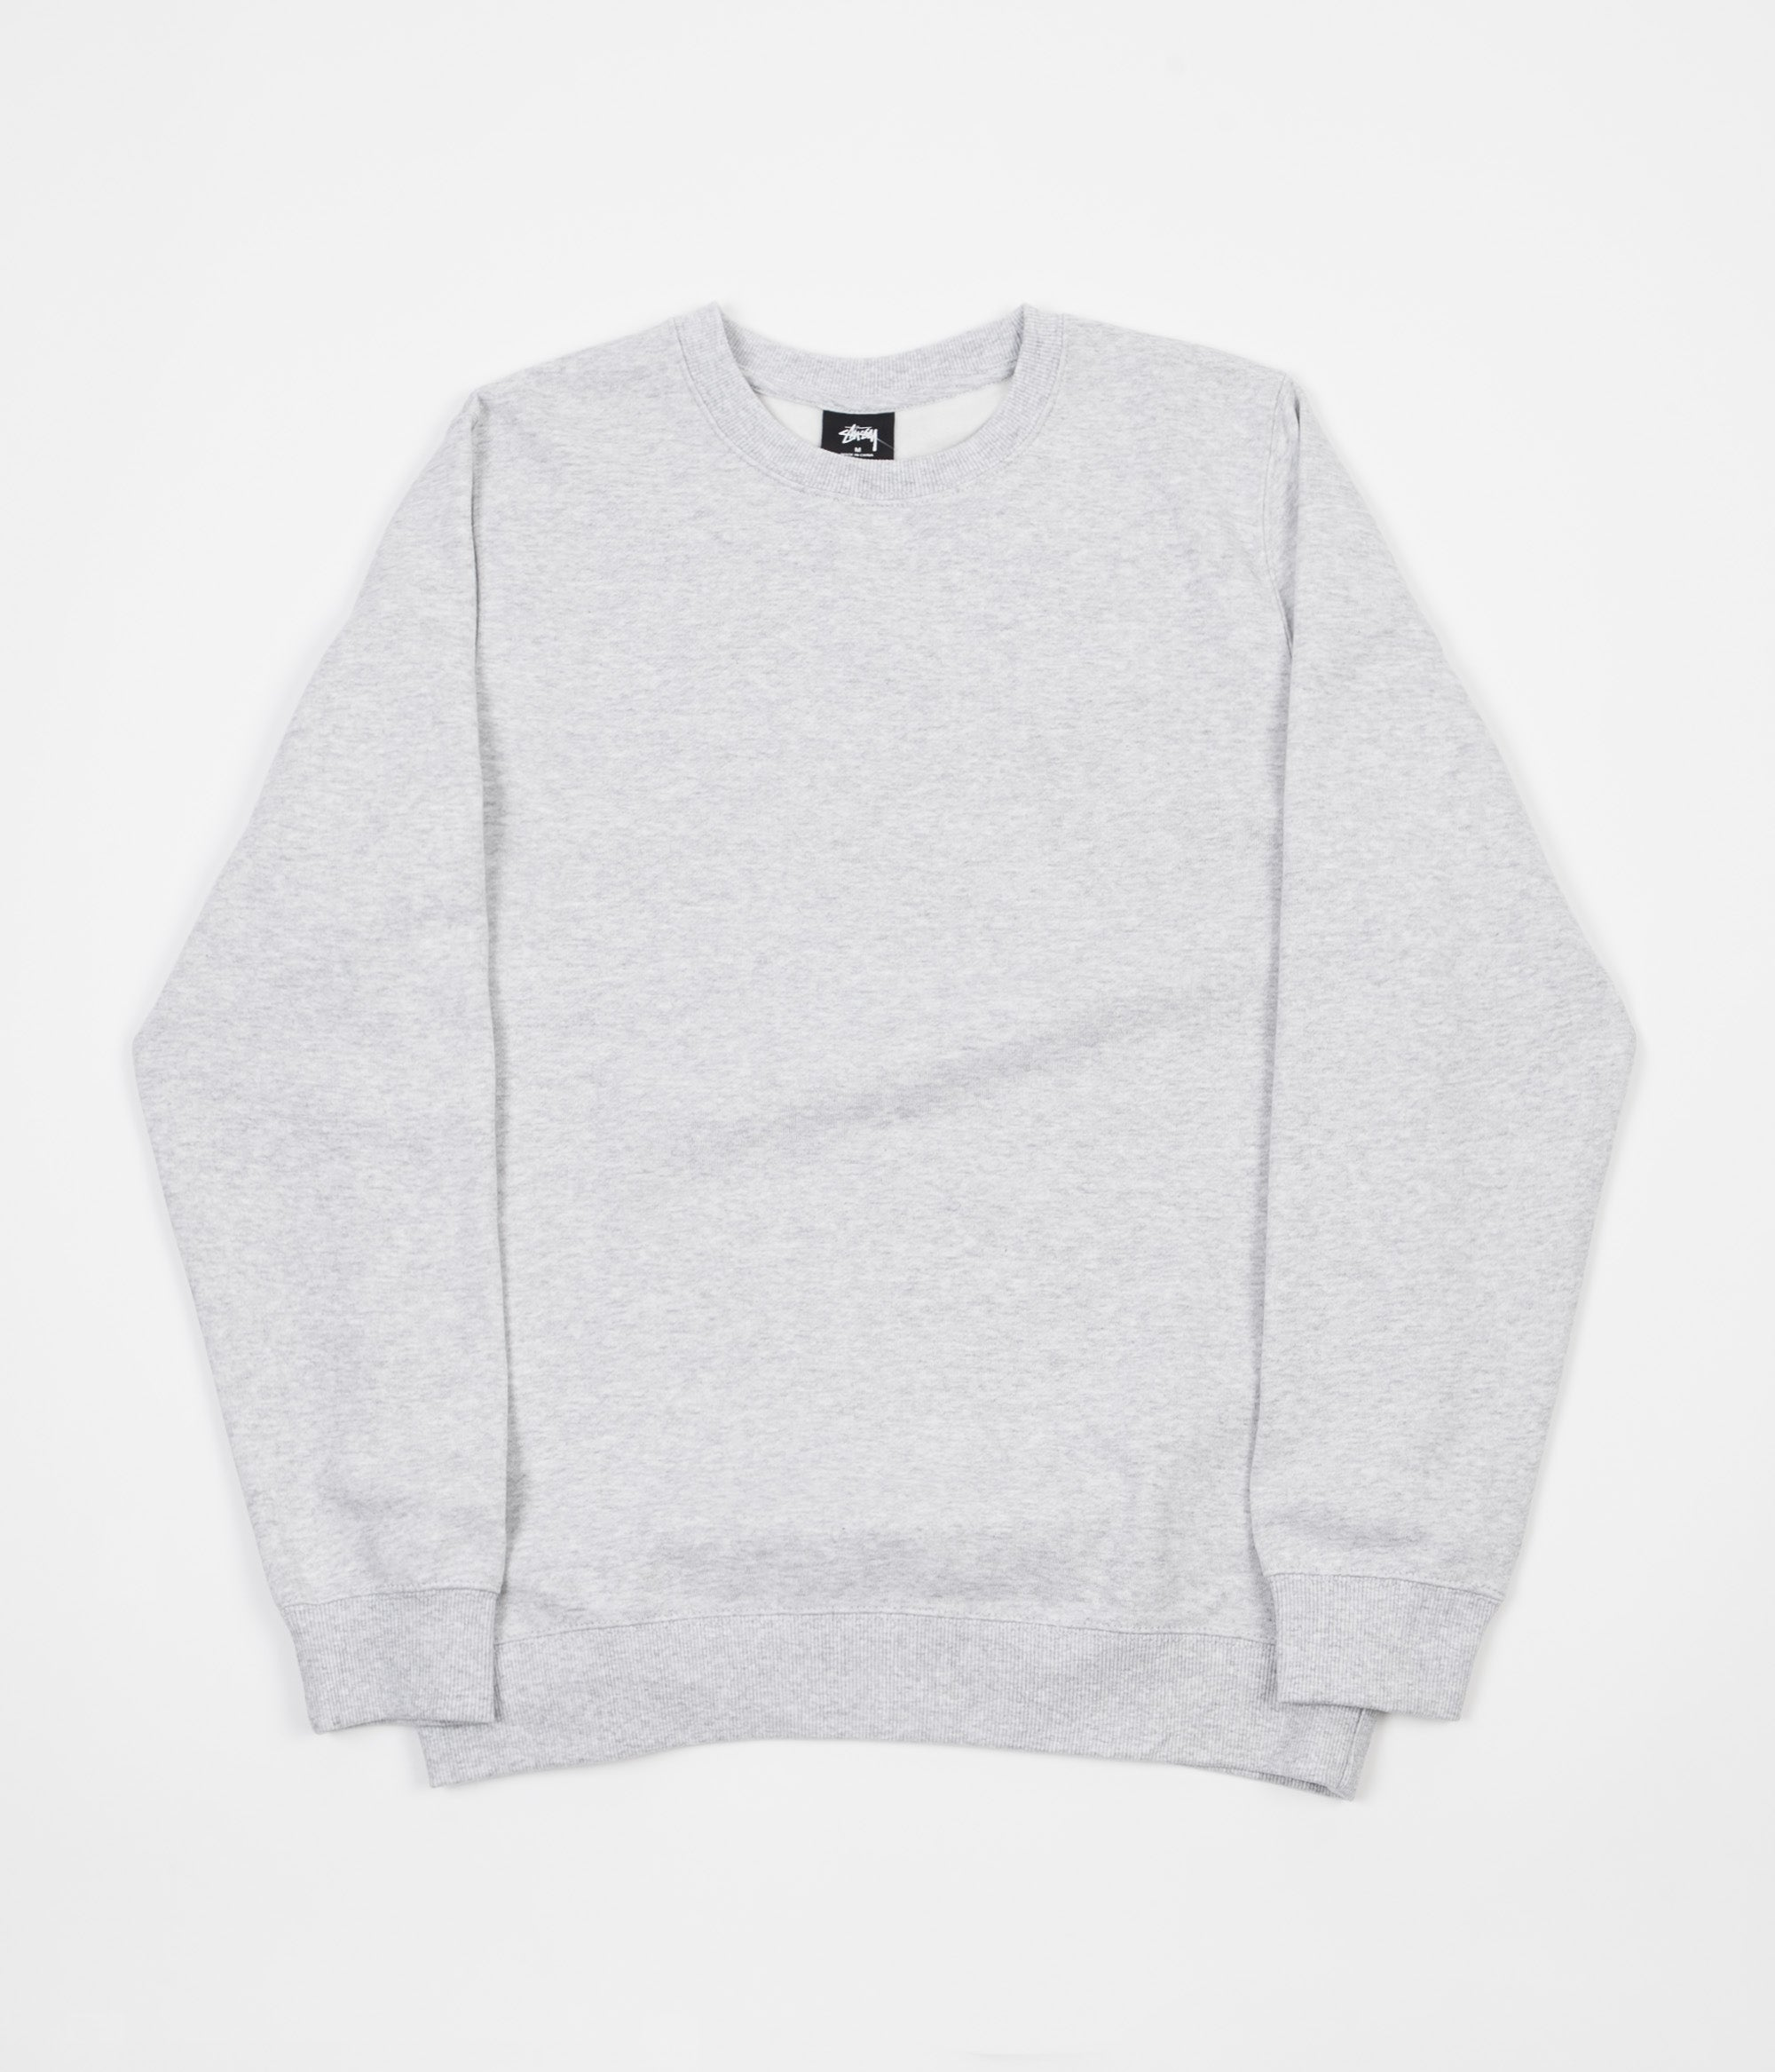 Stussy Camo Stock Crewneck Sweatshirt - Grey Heather